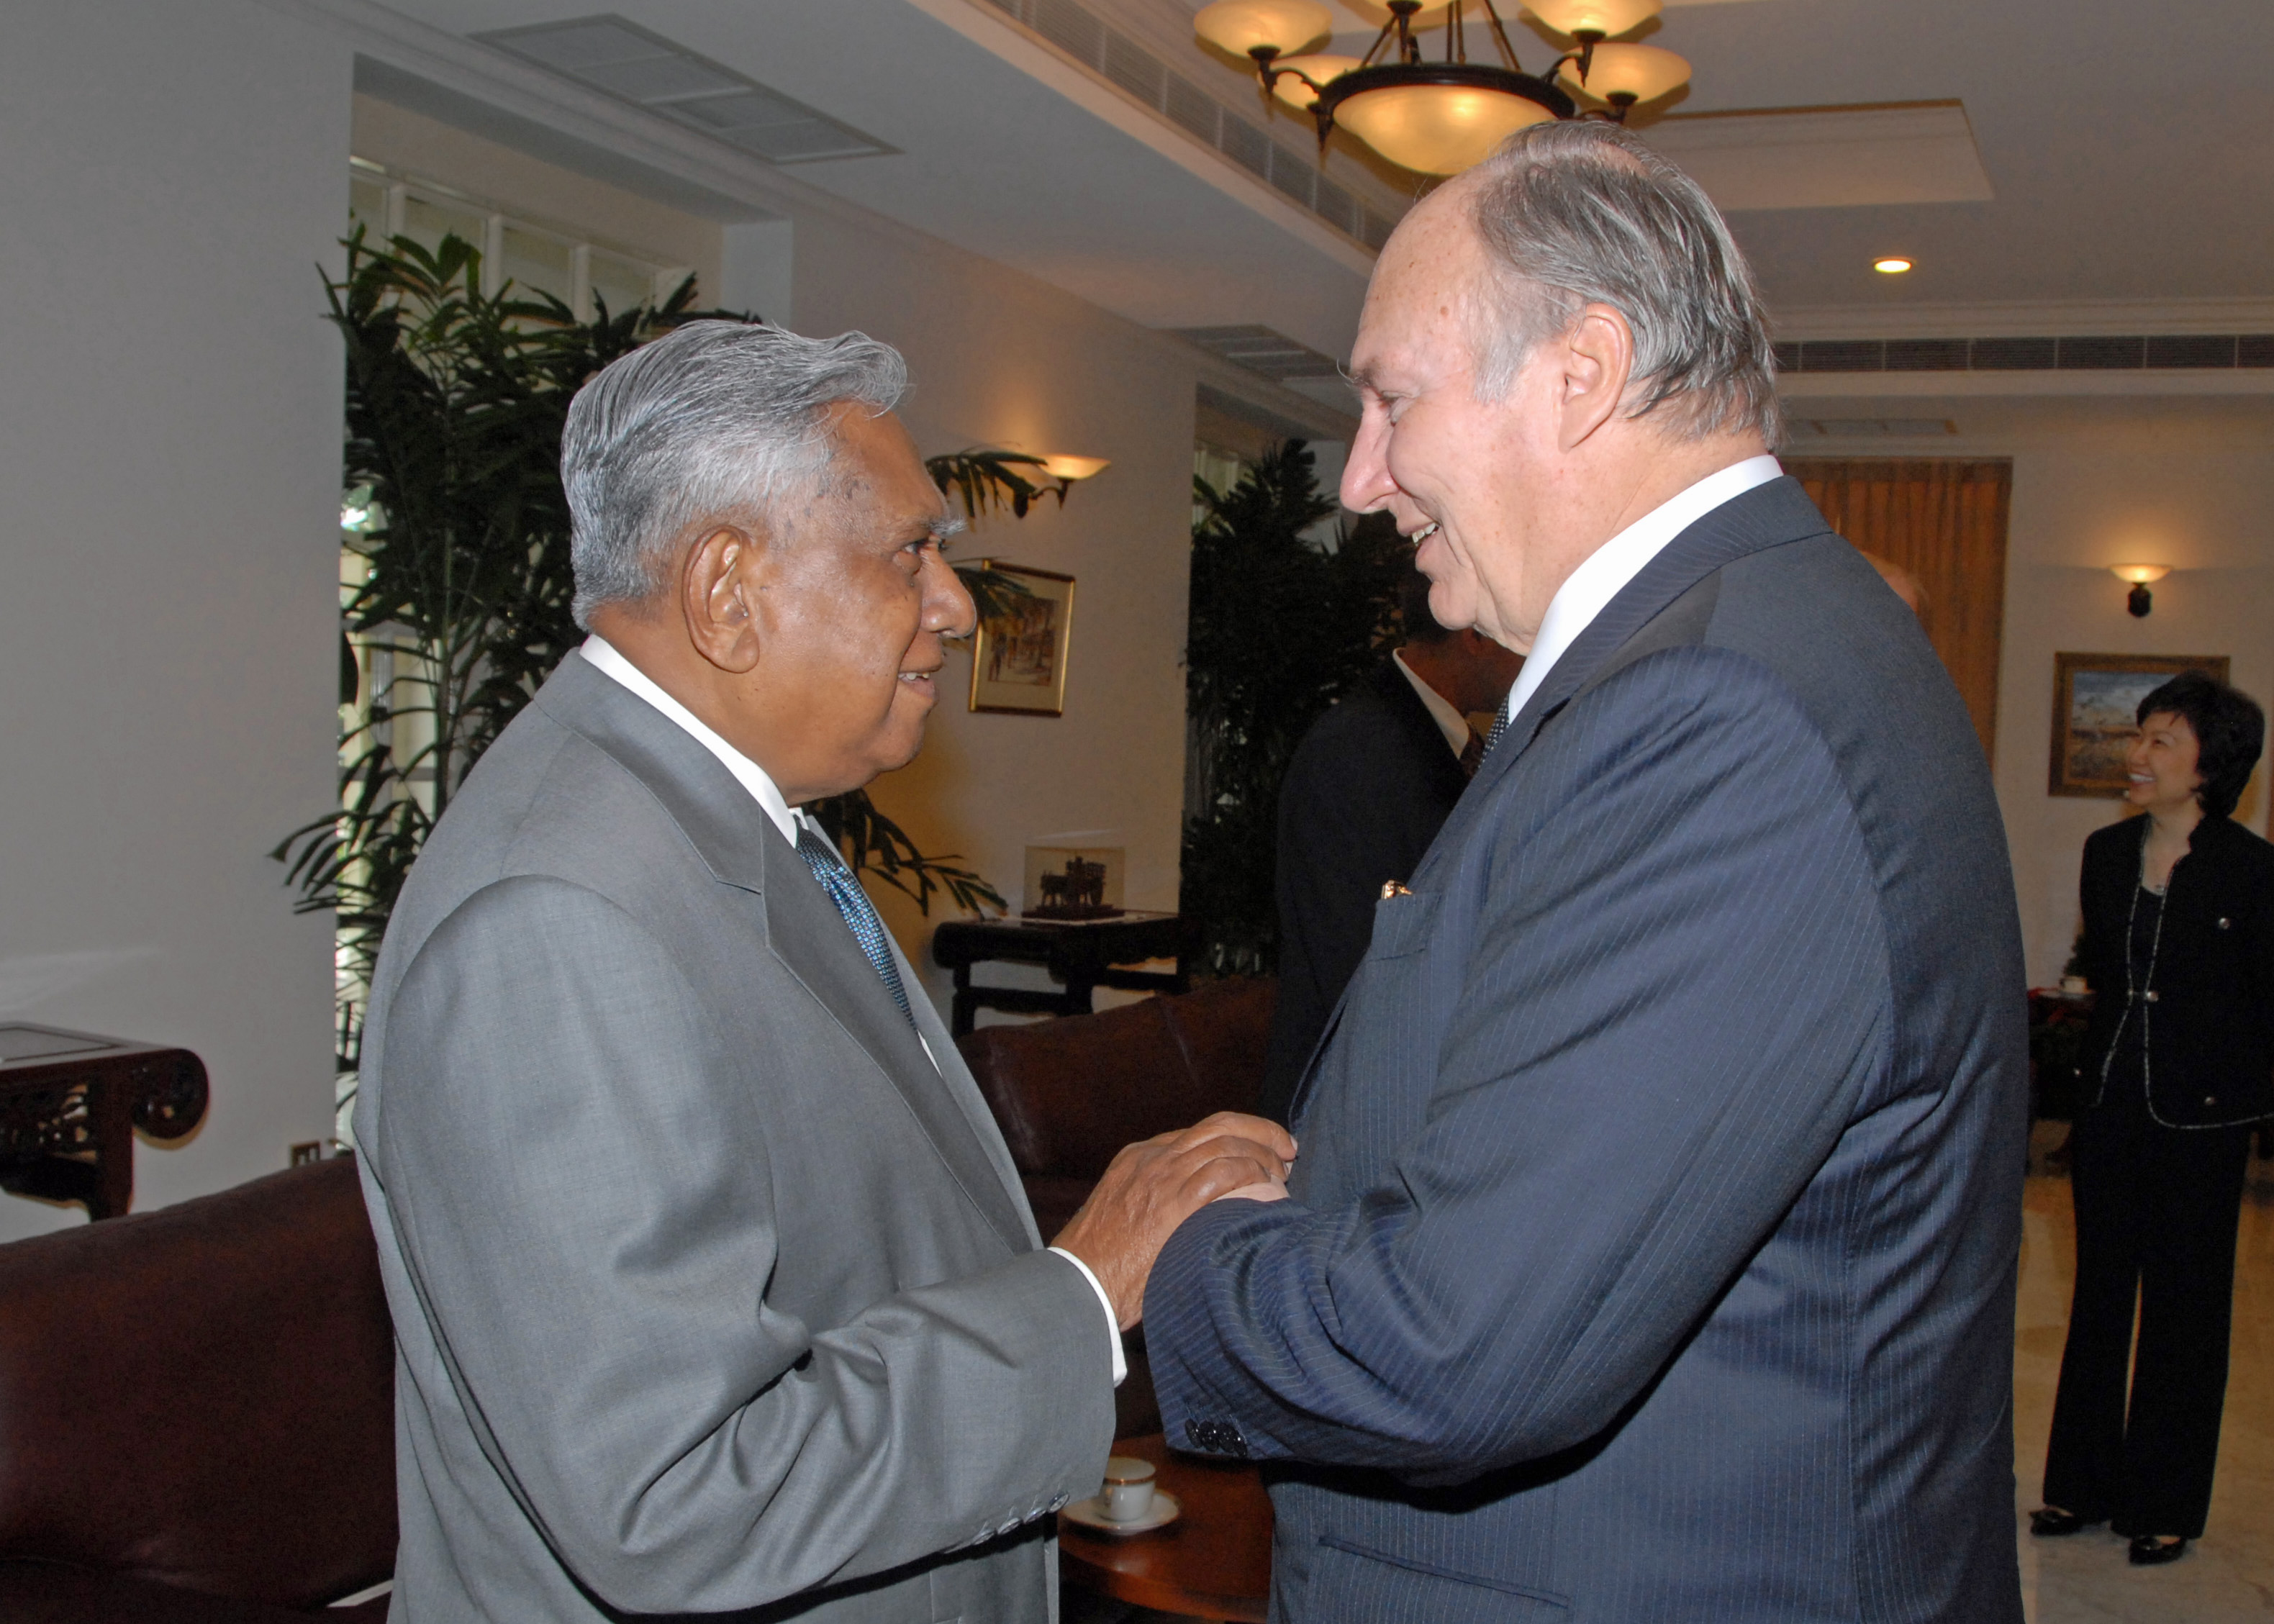 Mawlana Hazar Imam is greeted by President S R Nathan at the Istana in Singapore. Photo: Akbar Hakim